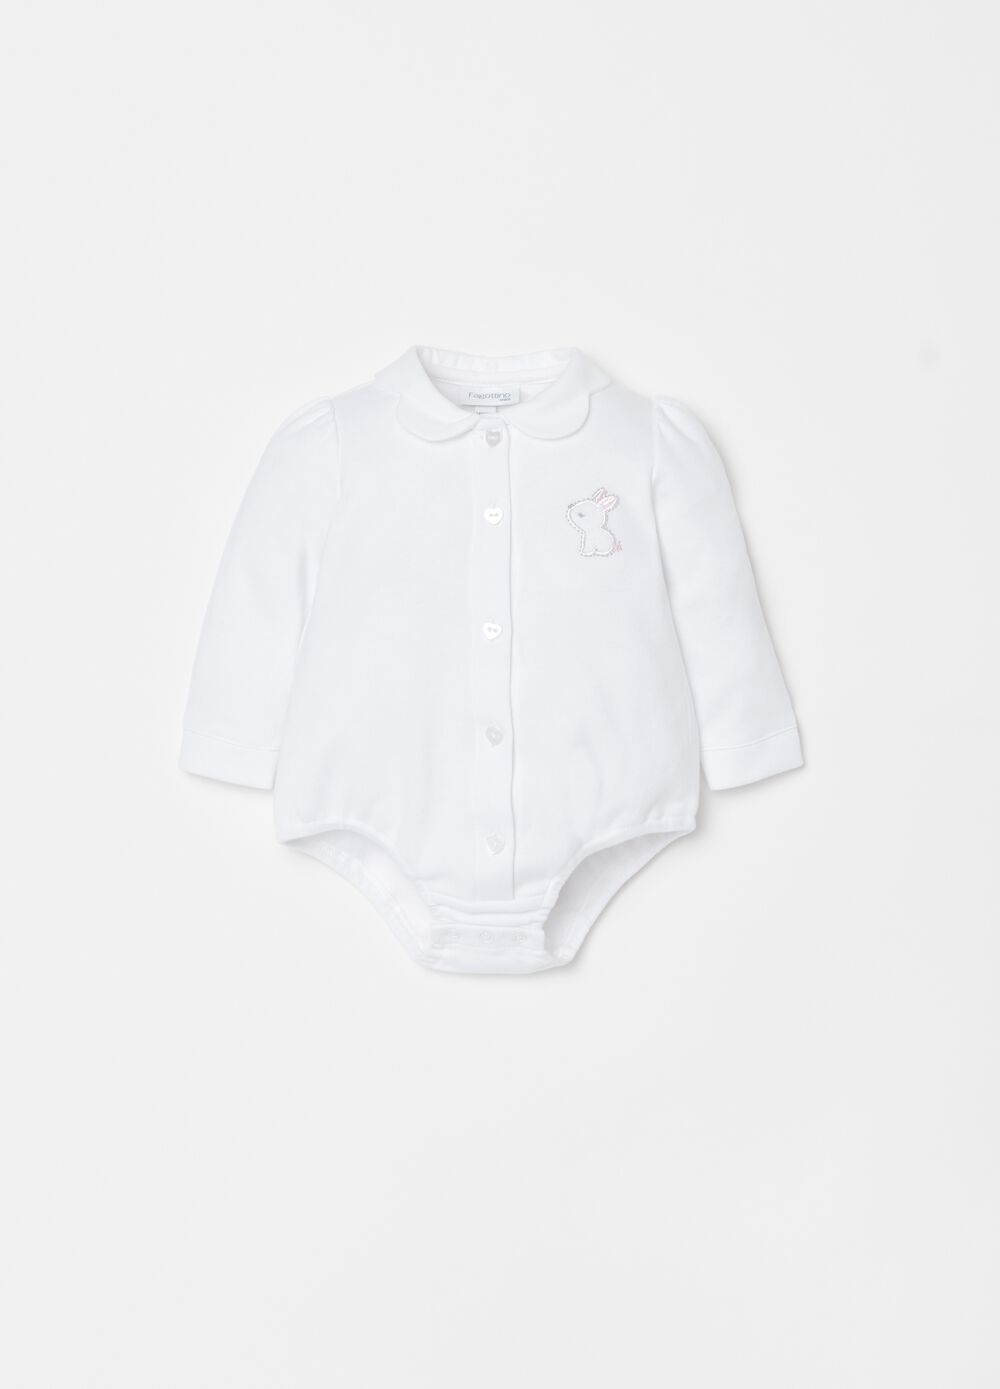 100% cotton bodysuit with rabbit embroidery